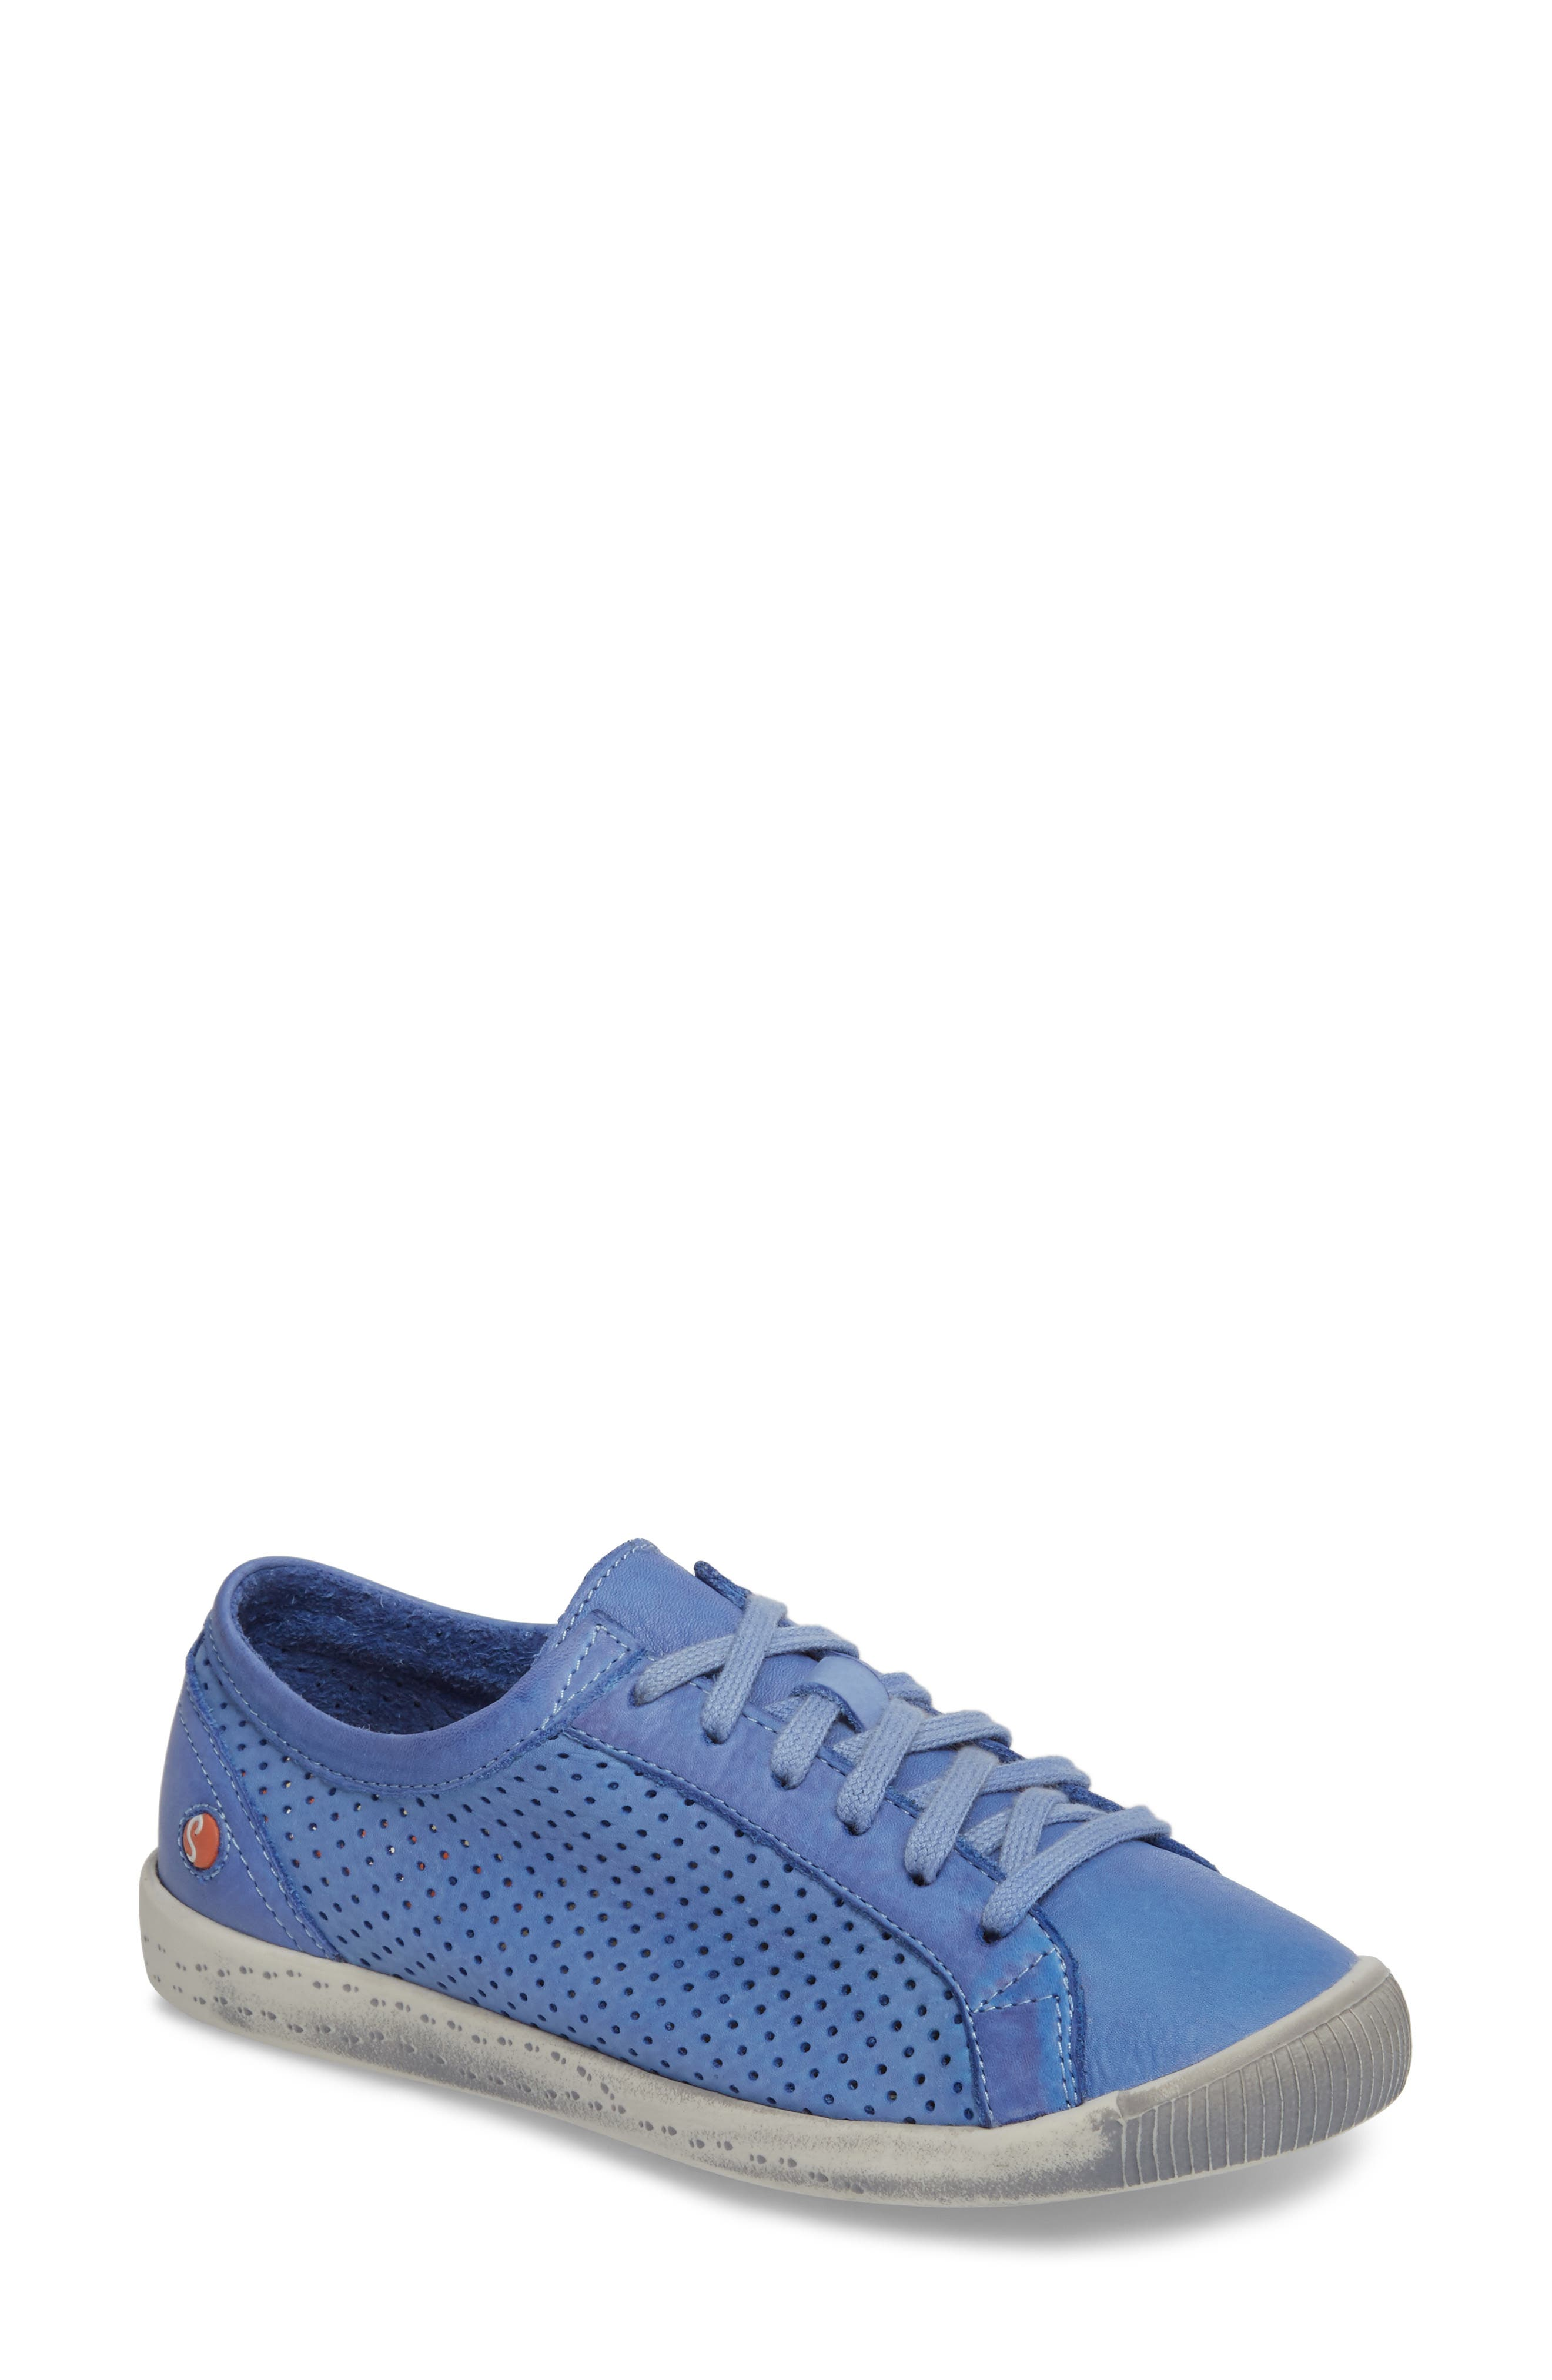 Ica Sneaker,                         Main,                         color, Lavender Leather